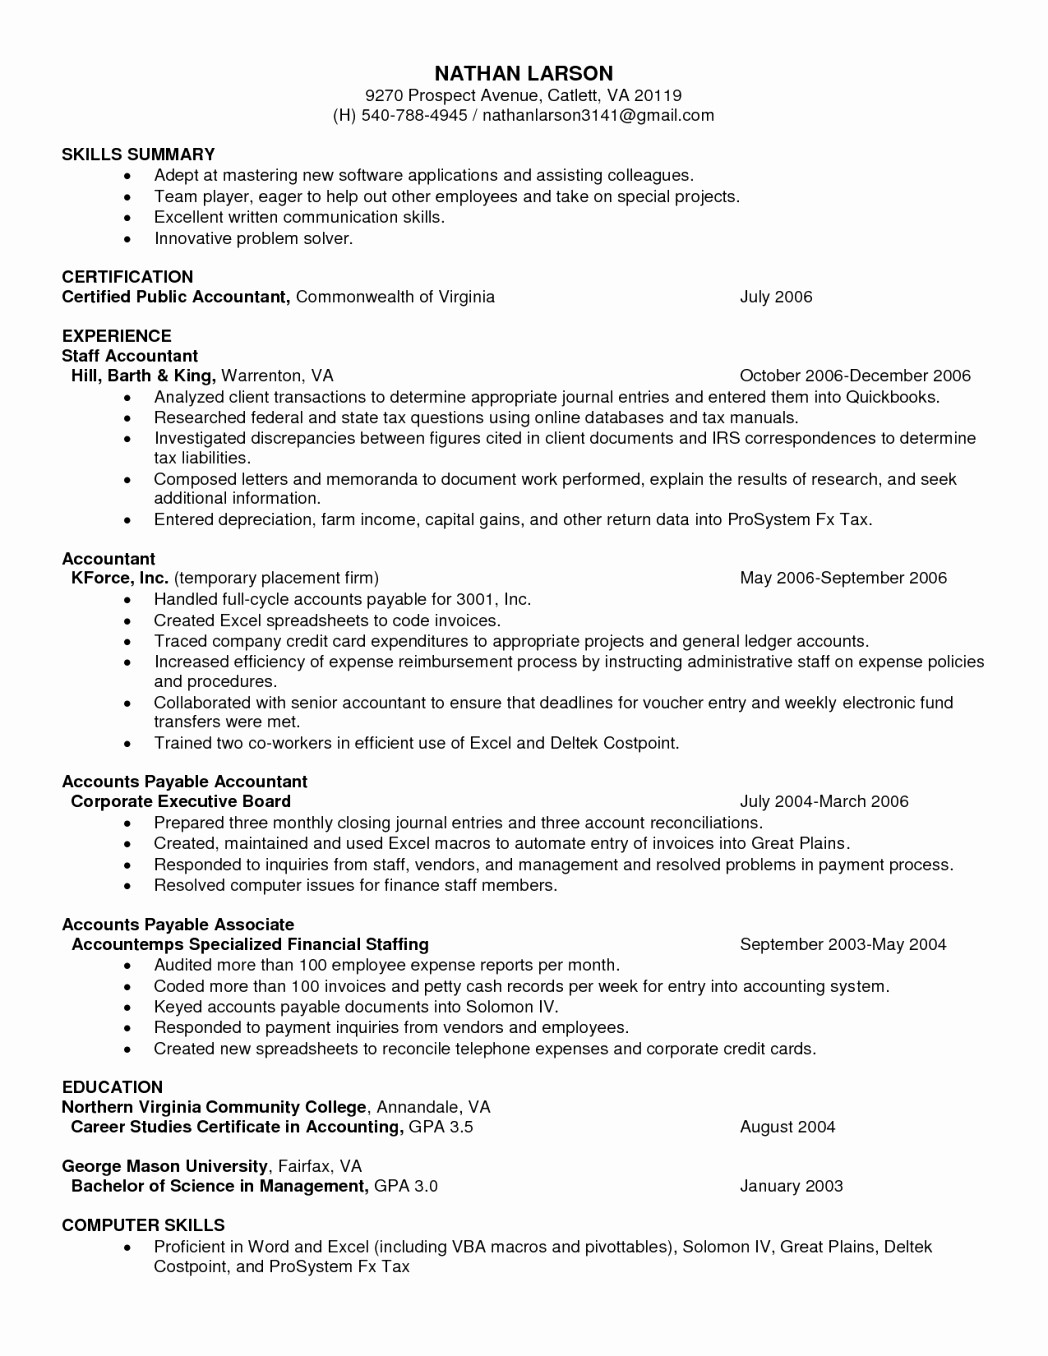 Microsoft Word 2003 Resume Templates Best Of Word 2003 Resume Templates Beautiful 50 Creative Resume